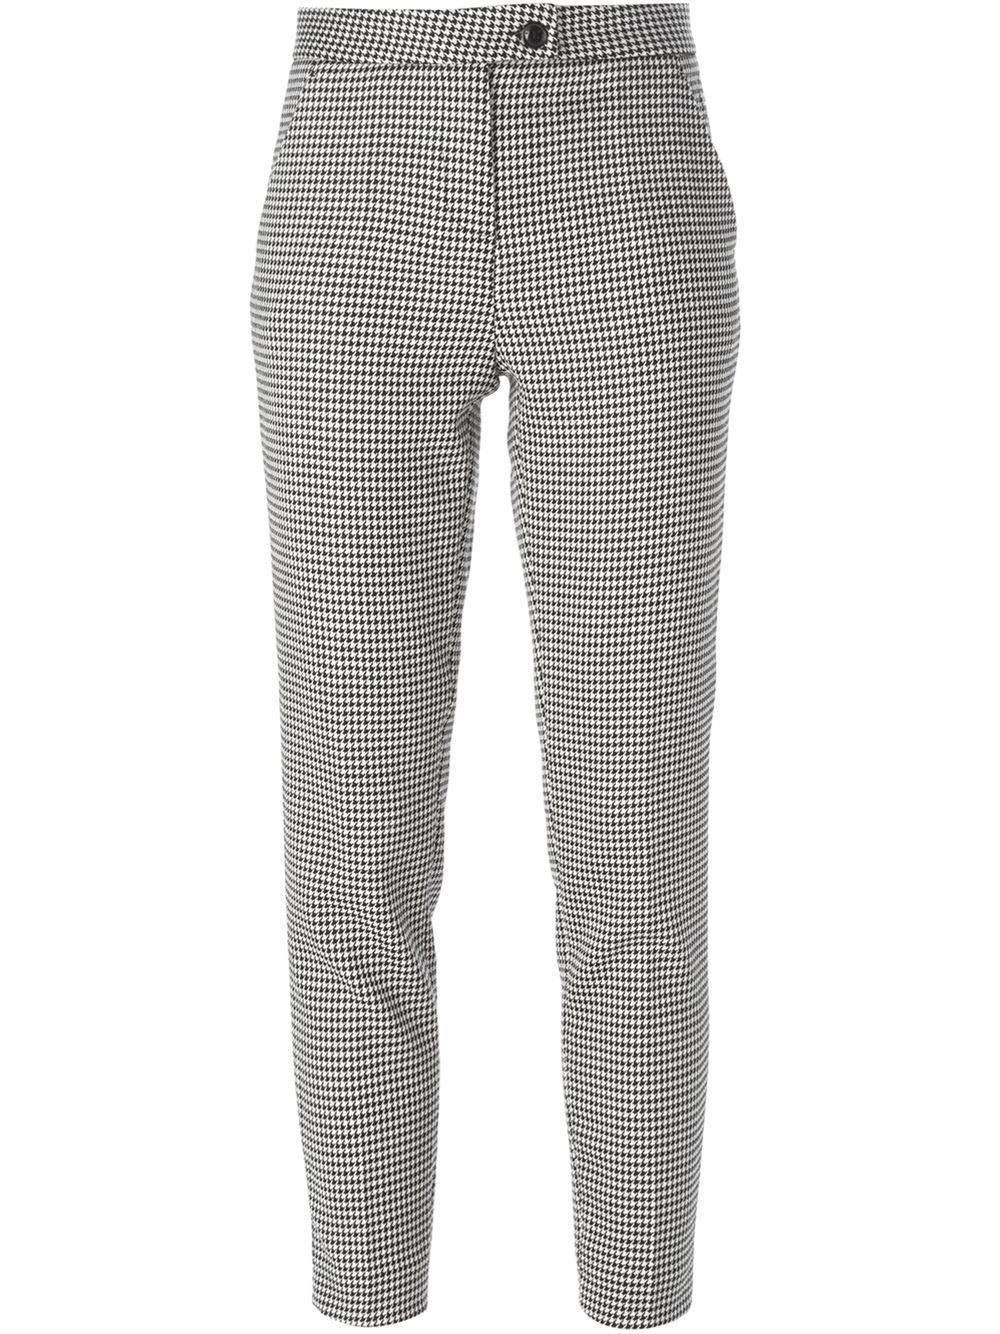 Boutique Moschino Houndstooth Tapered Trousers - Changing Room - Farfetch.com